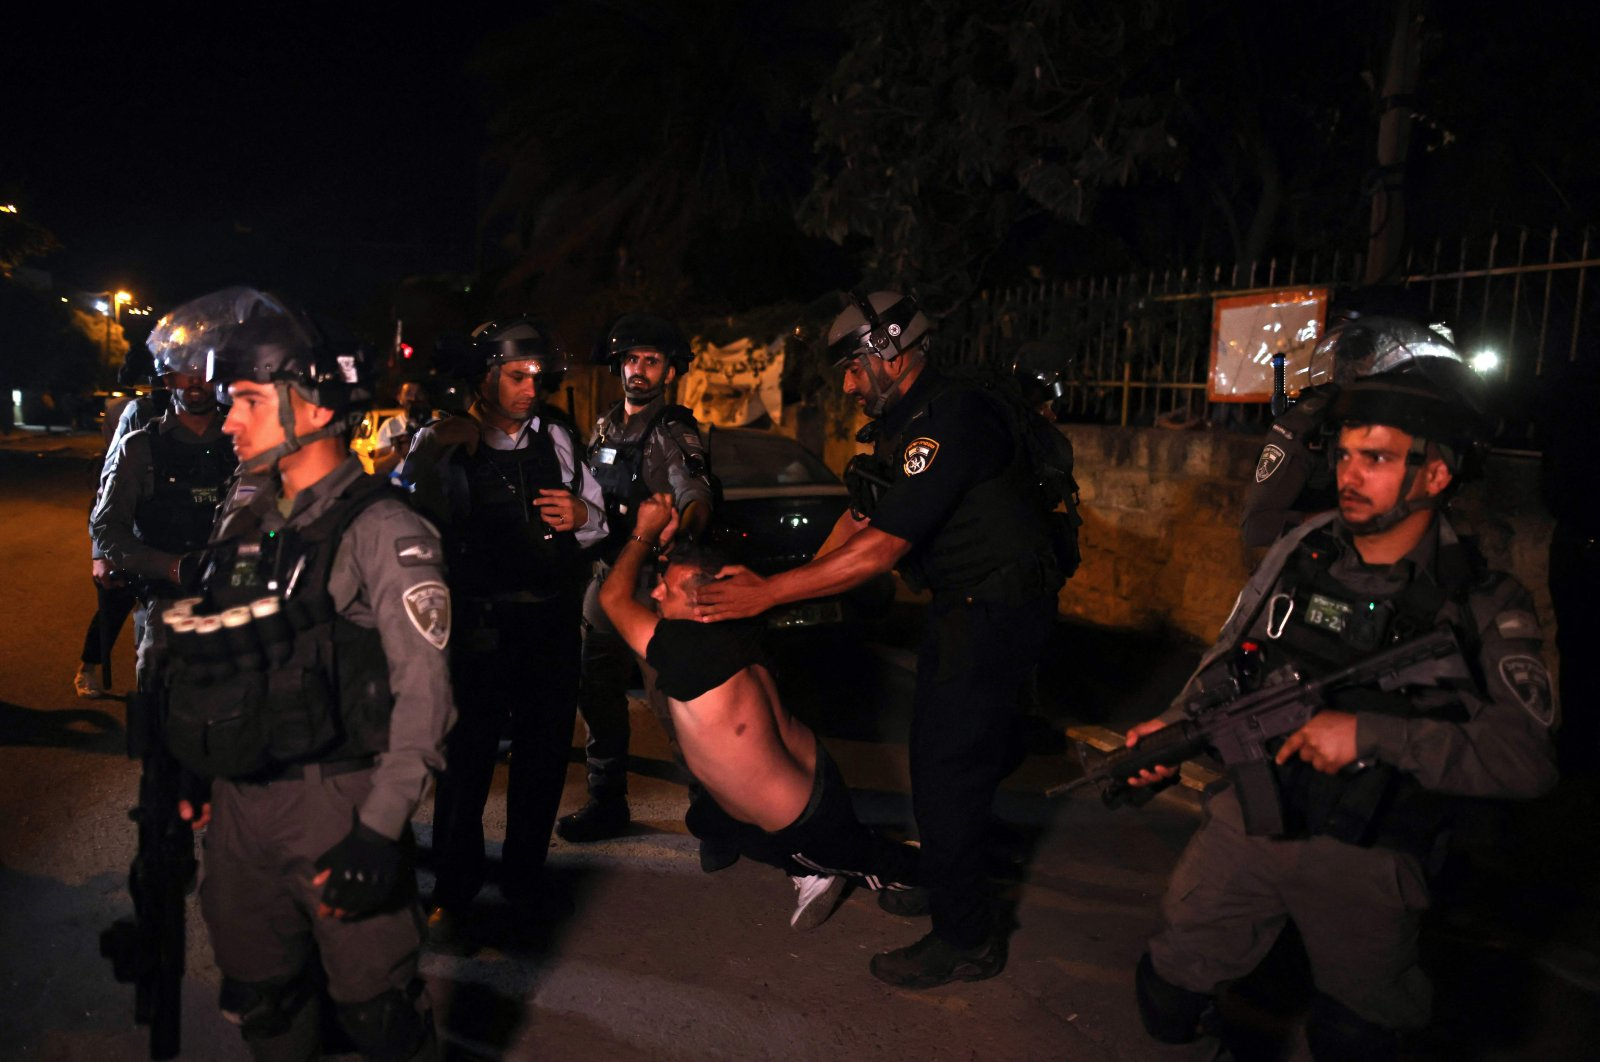 A Palestinian demonstrator is arrested by Israeli security forces while protesting the eviction of Palestinian families in the Sheikh Jarrah neighborhood of occupied East Jerusalem, Palestine, June 21, 2021. (AFP Photo)